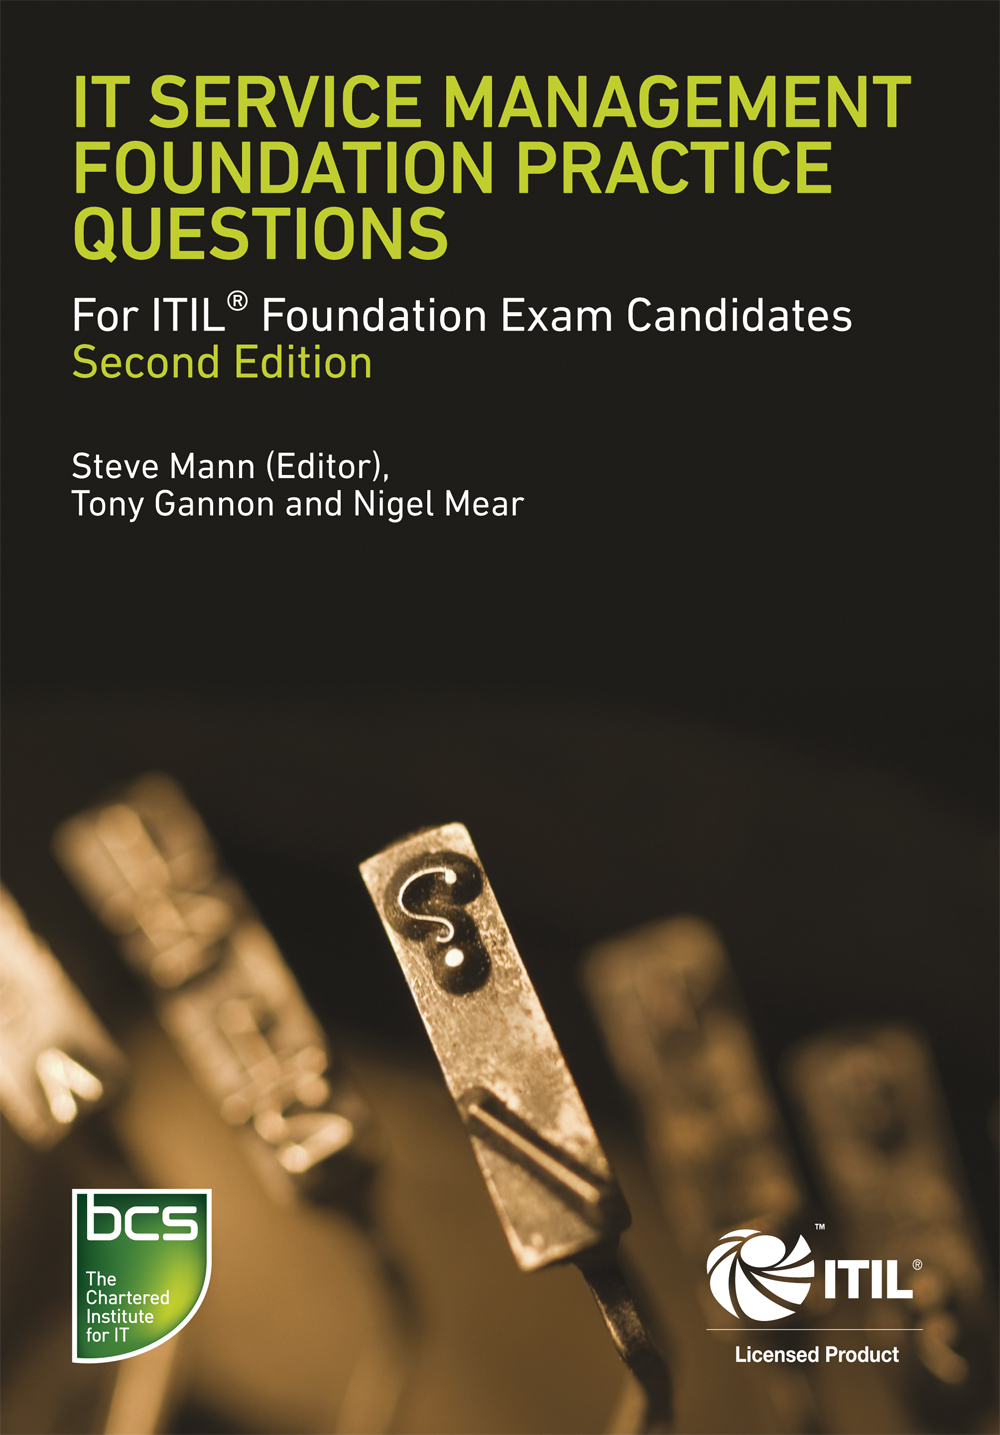 IT Service Management Foundation Practice Questions For ITIL Foundation Exam candidates